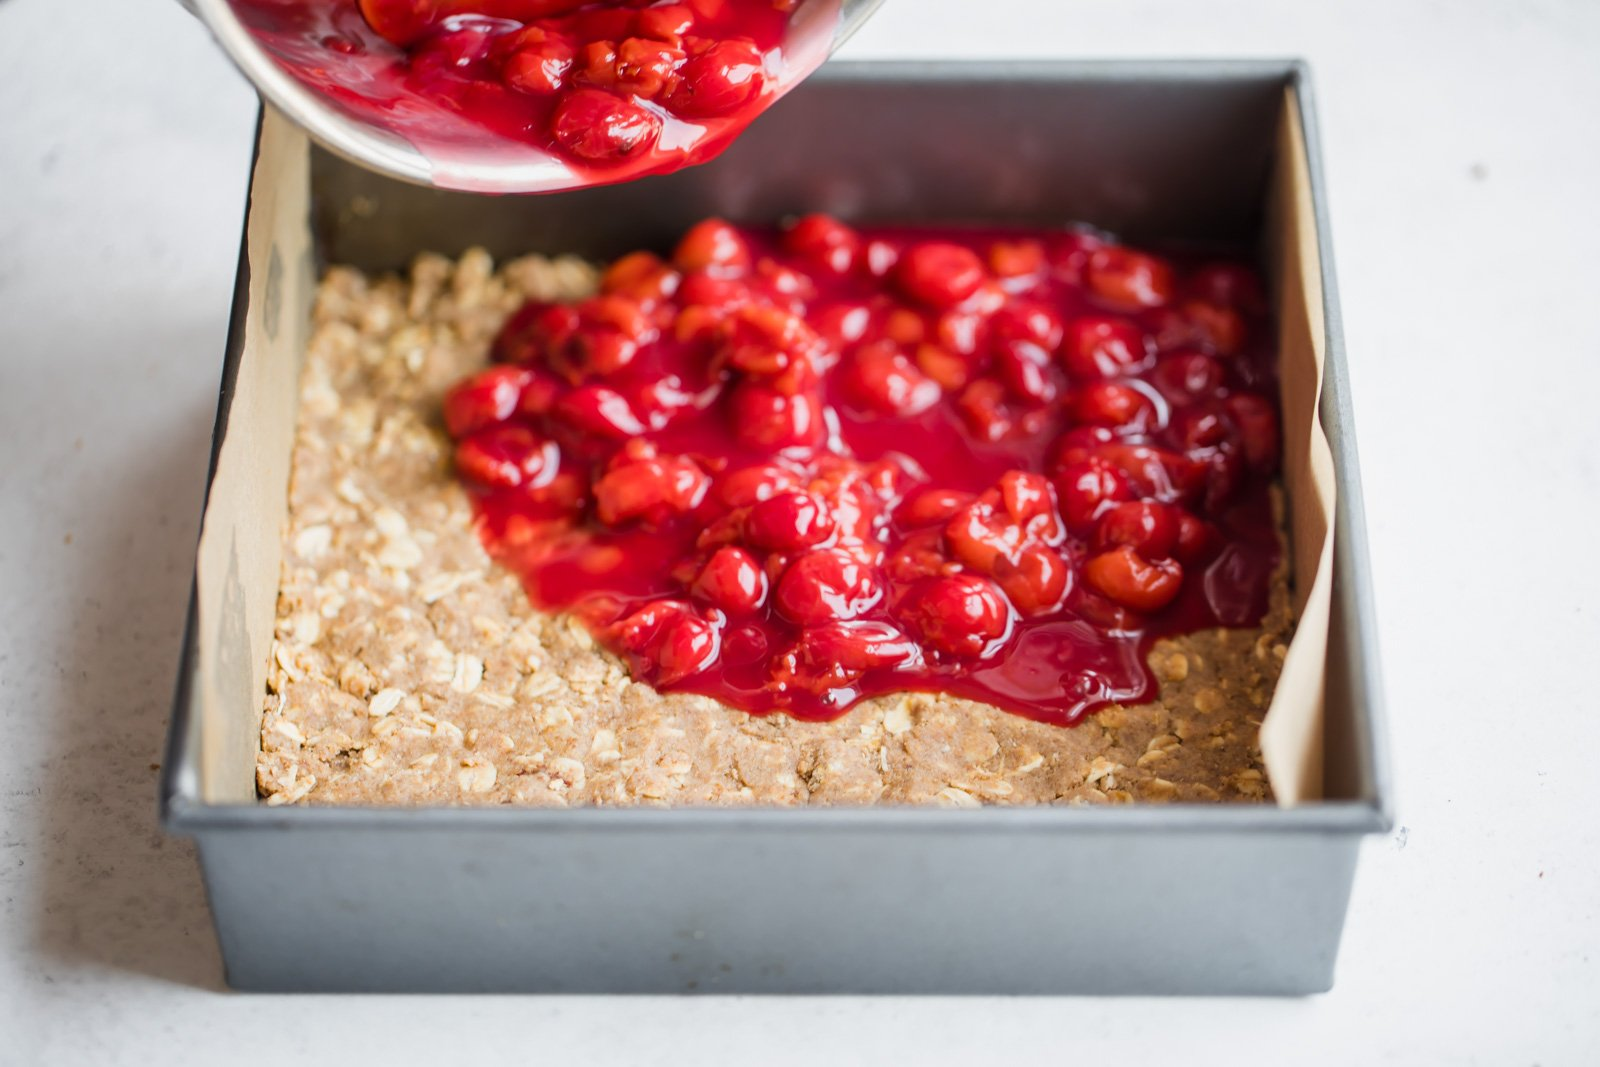 tart cherry pie filling being poured onto crust in a square pan